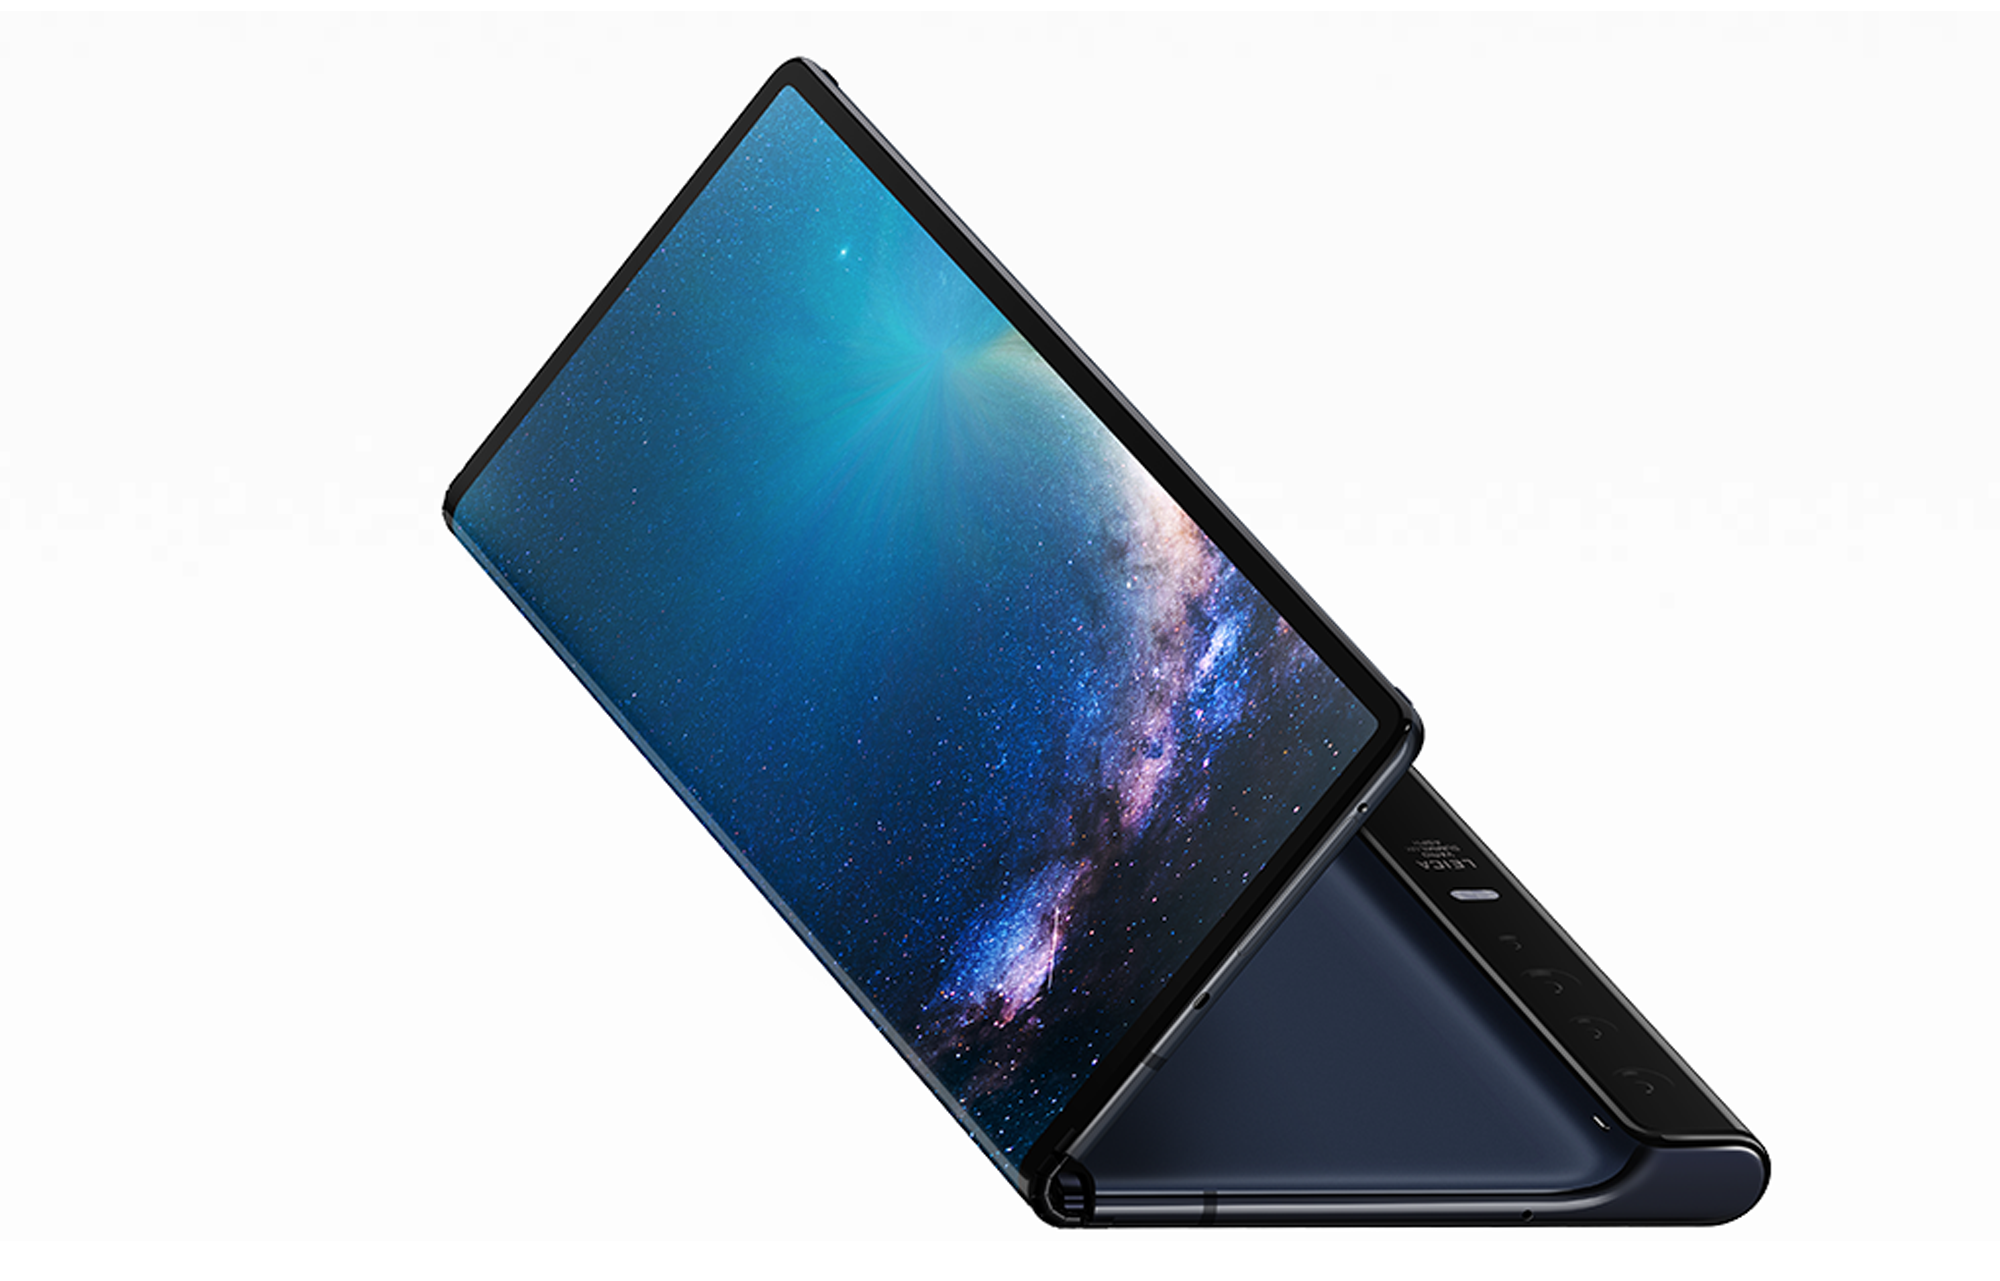 Huawei's Mate X uses a single exterior screen that folds in half.